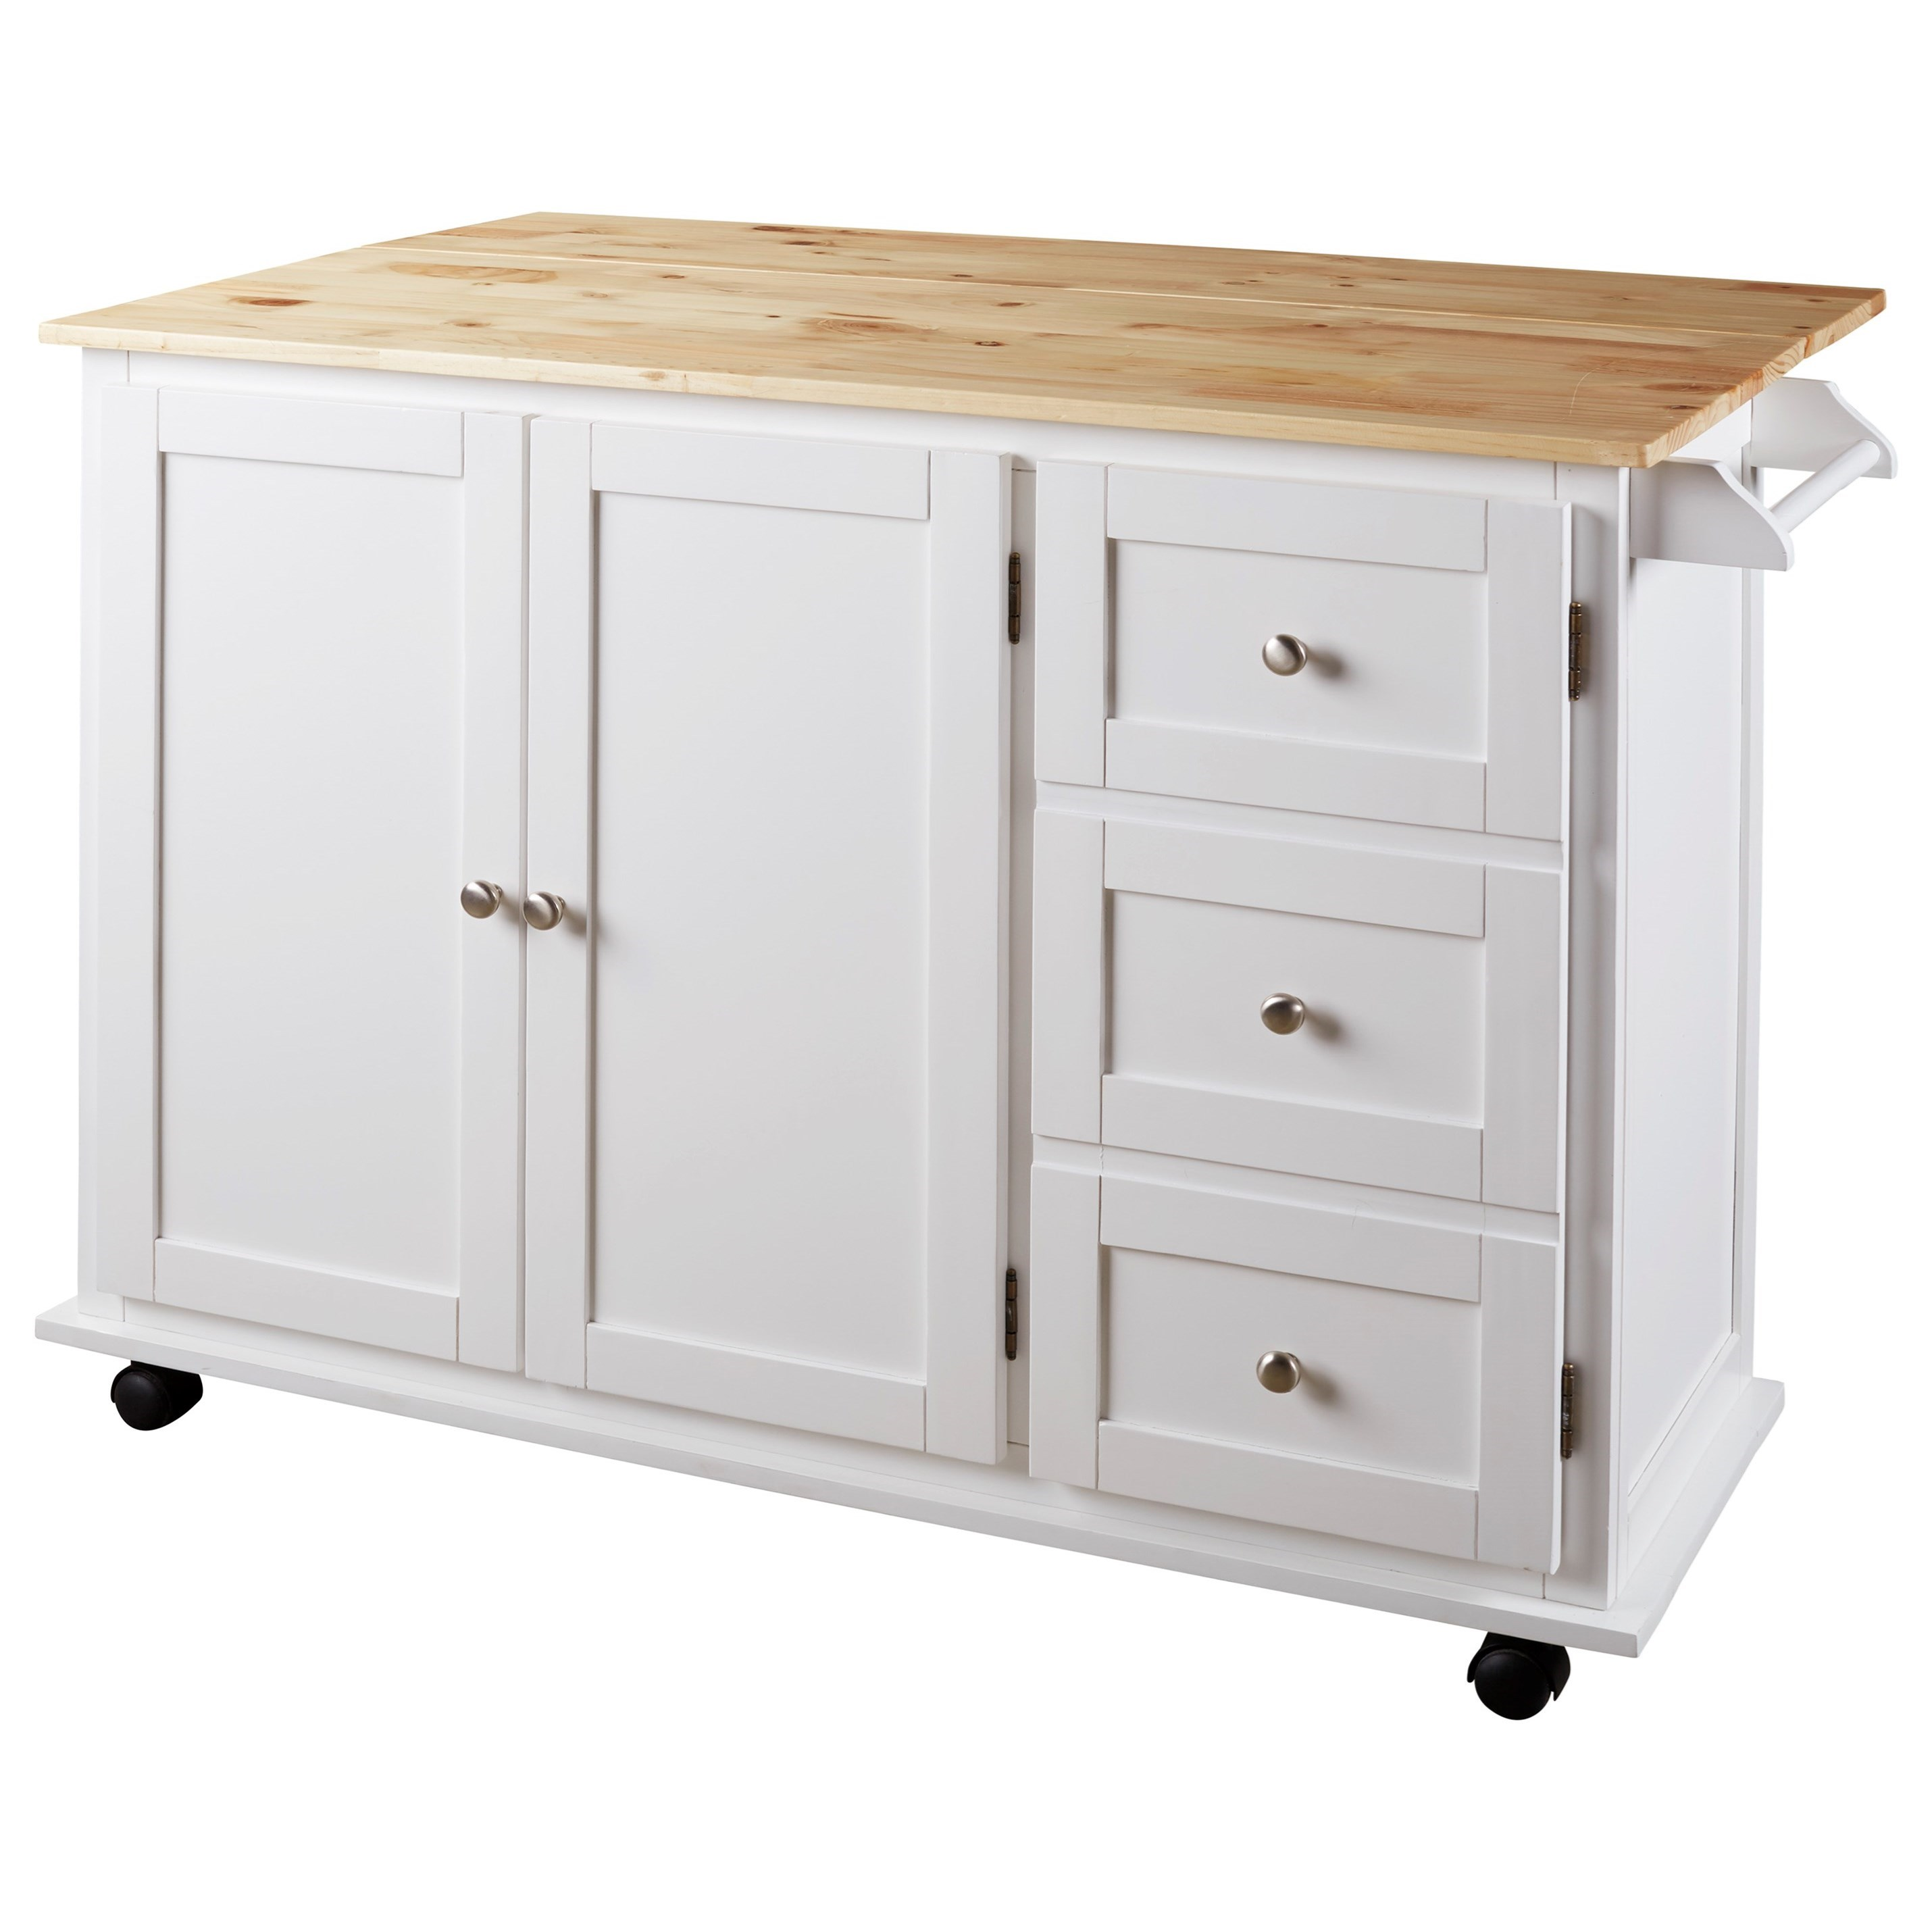 Withurst Kitchen Cart by Signature Design by Ashley at HomeWorld Furniture